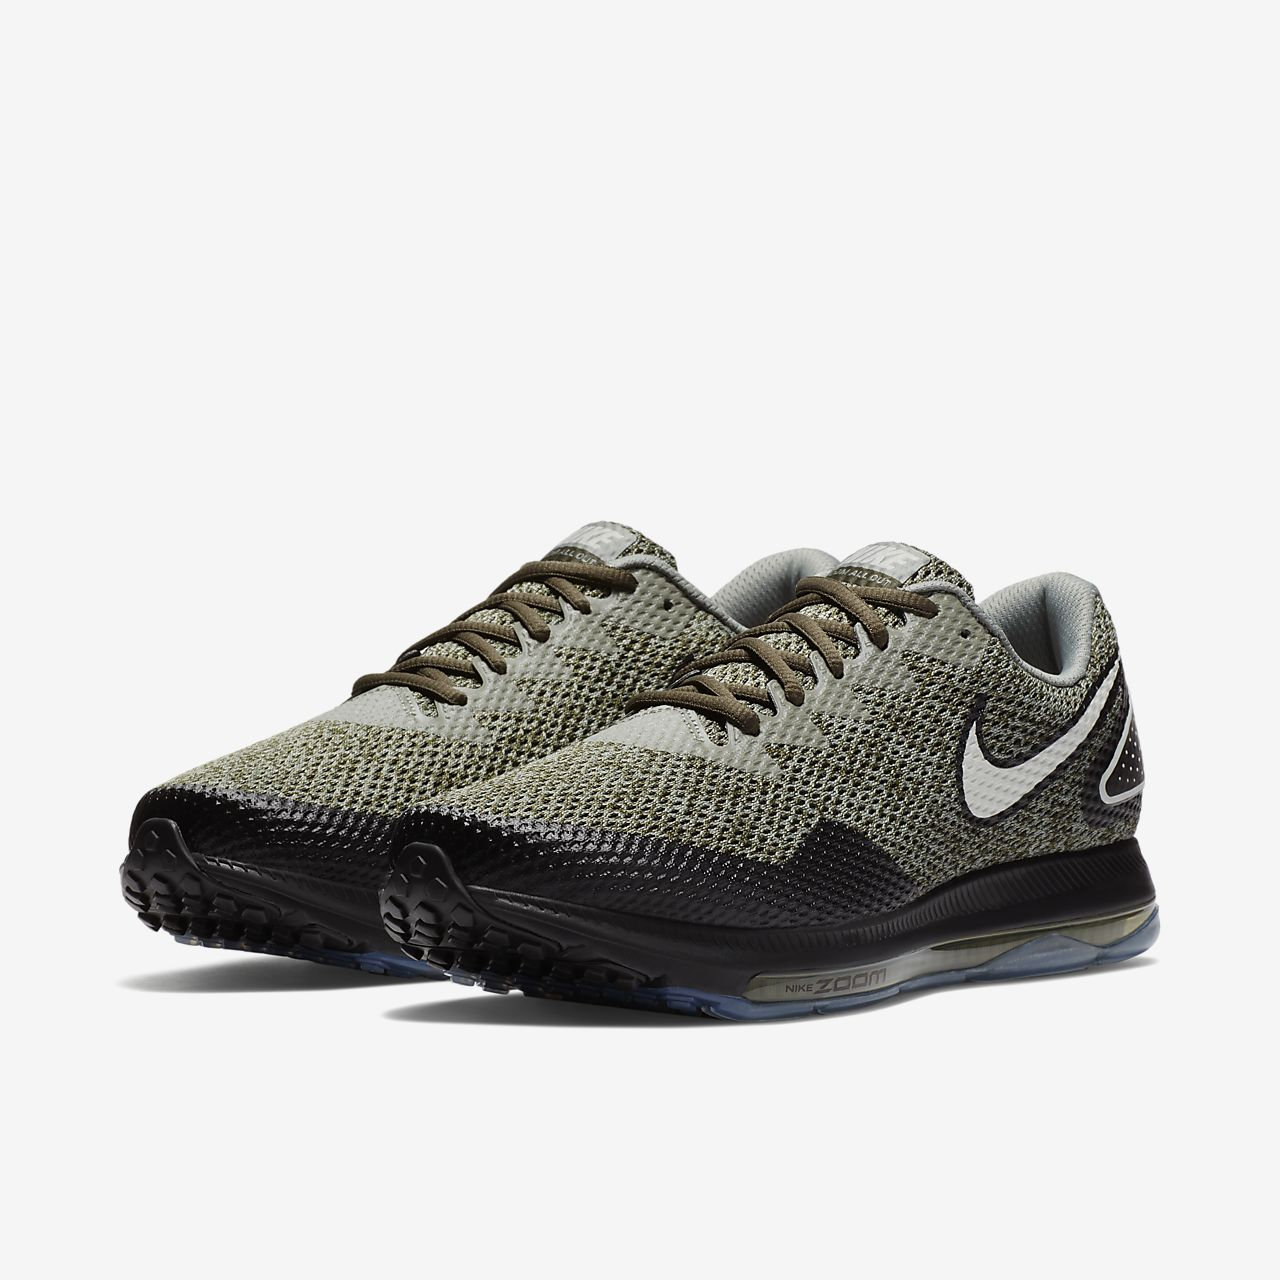 ... Nike Zoom All Out Low 2 Men's Running Shoe